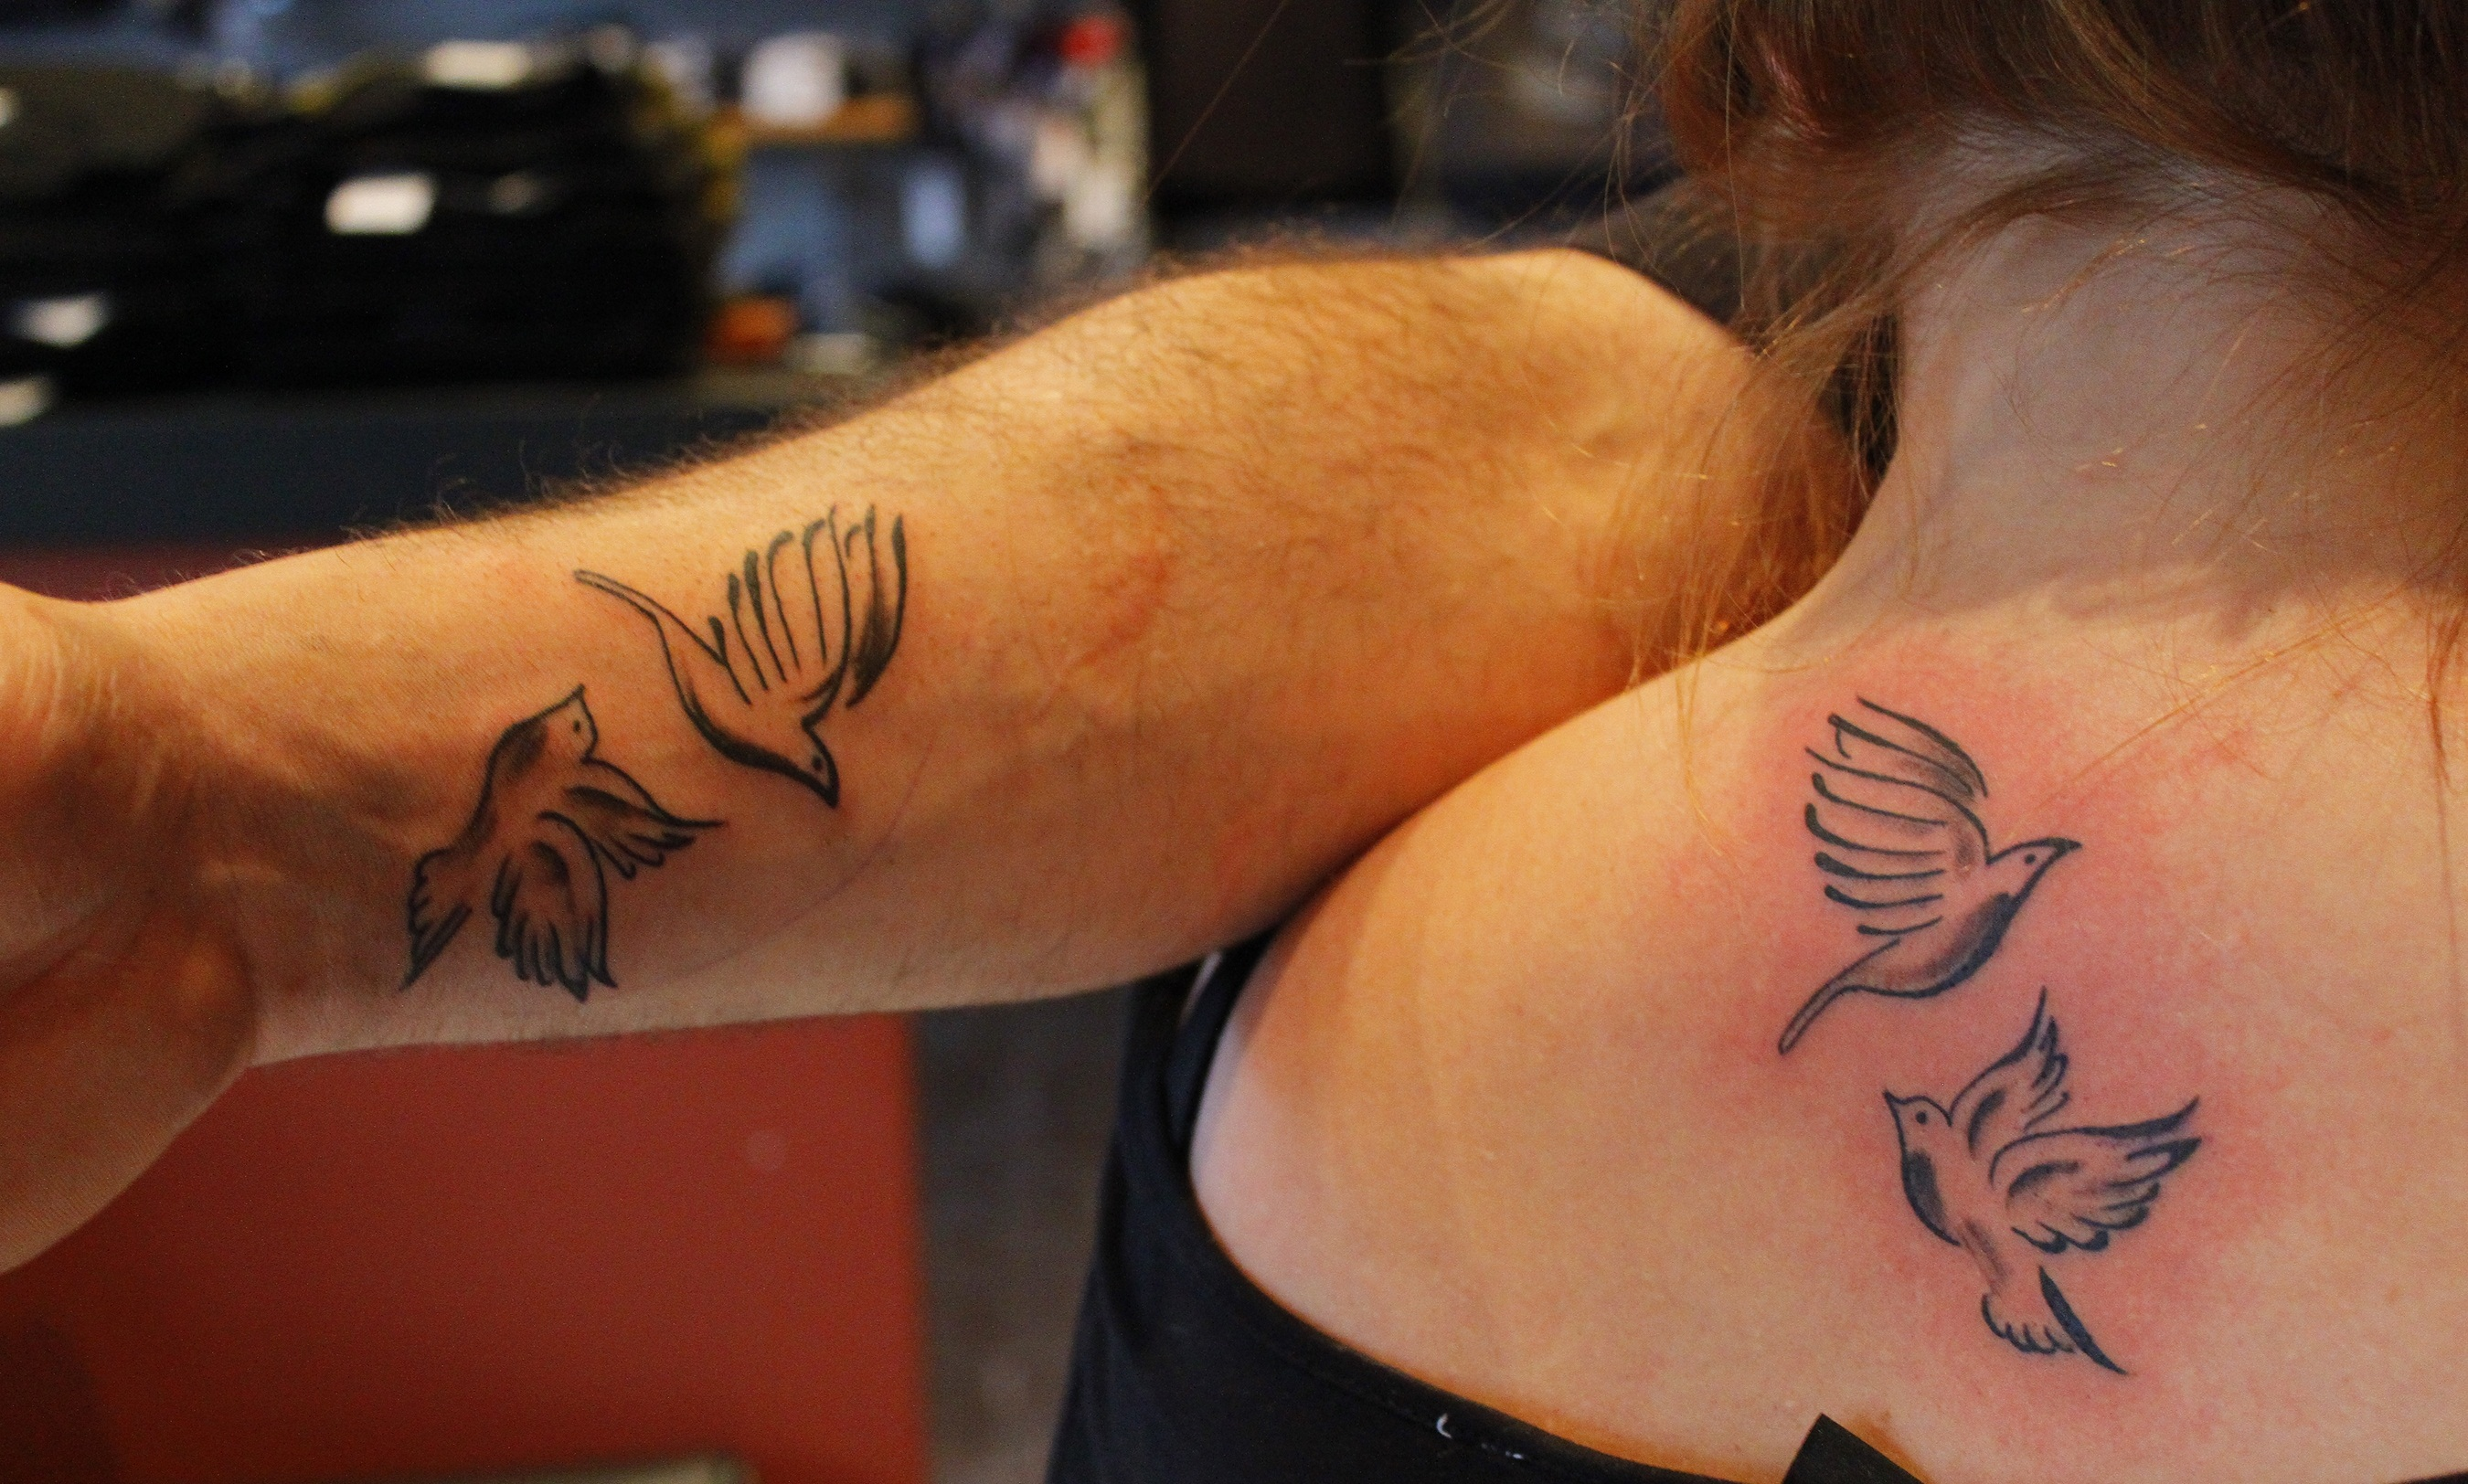 Turtle dove tattoo - photo#19